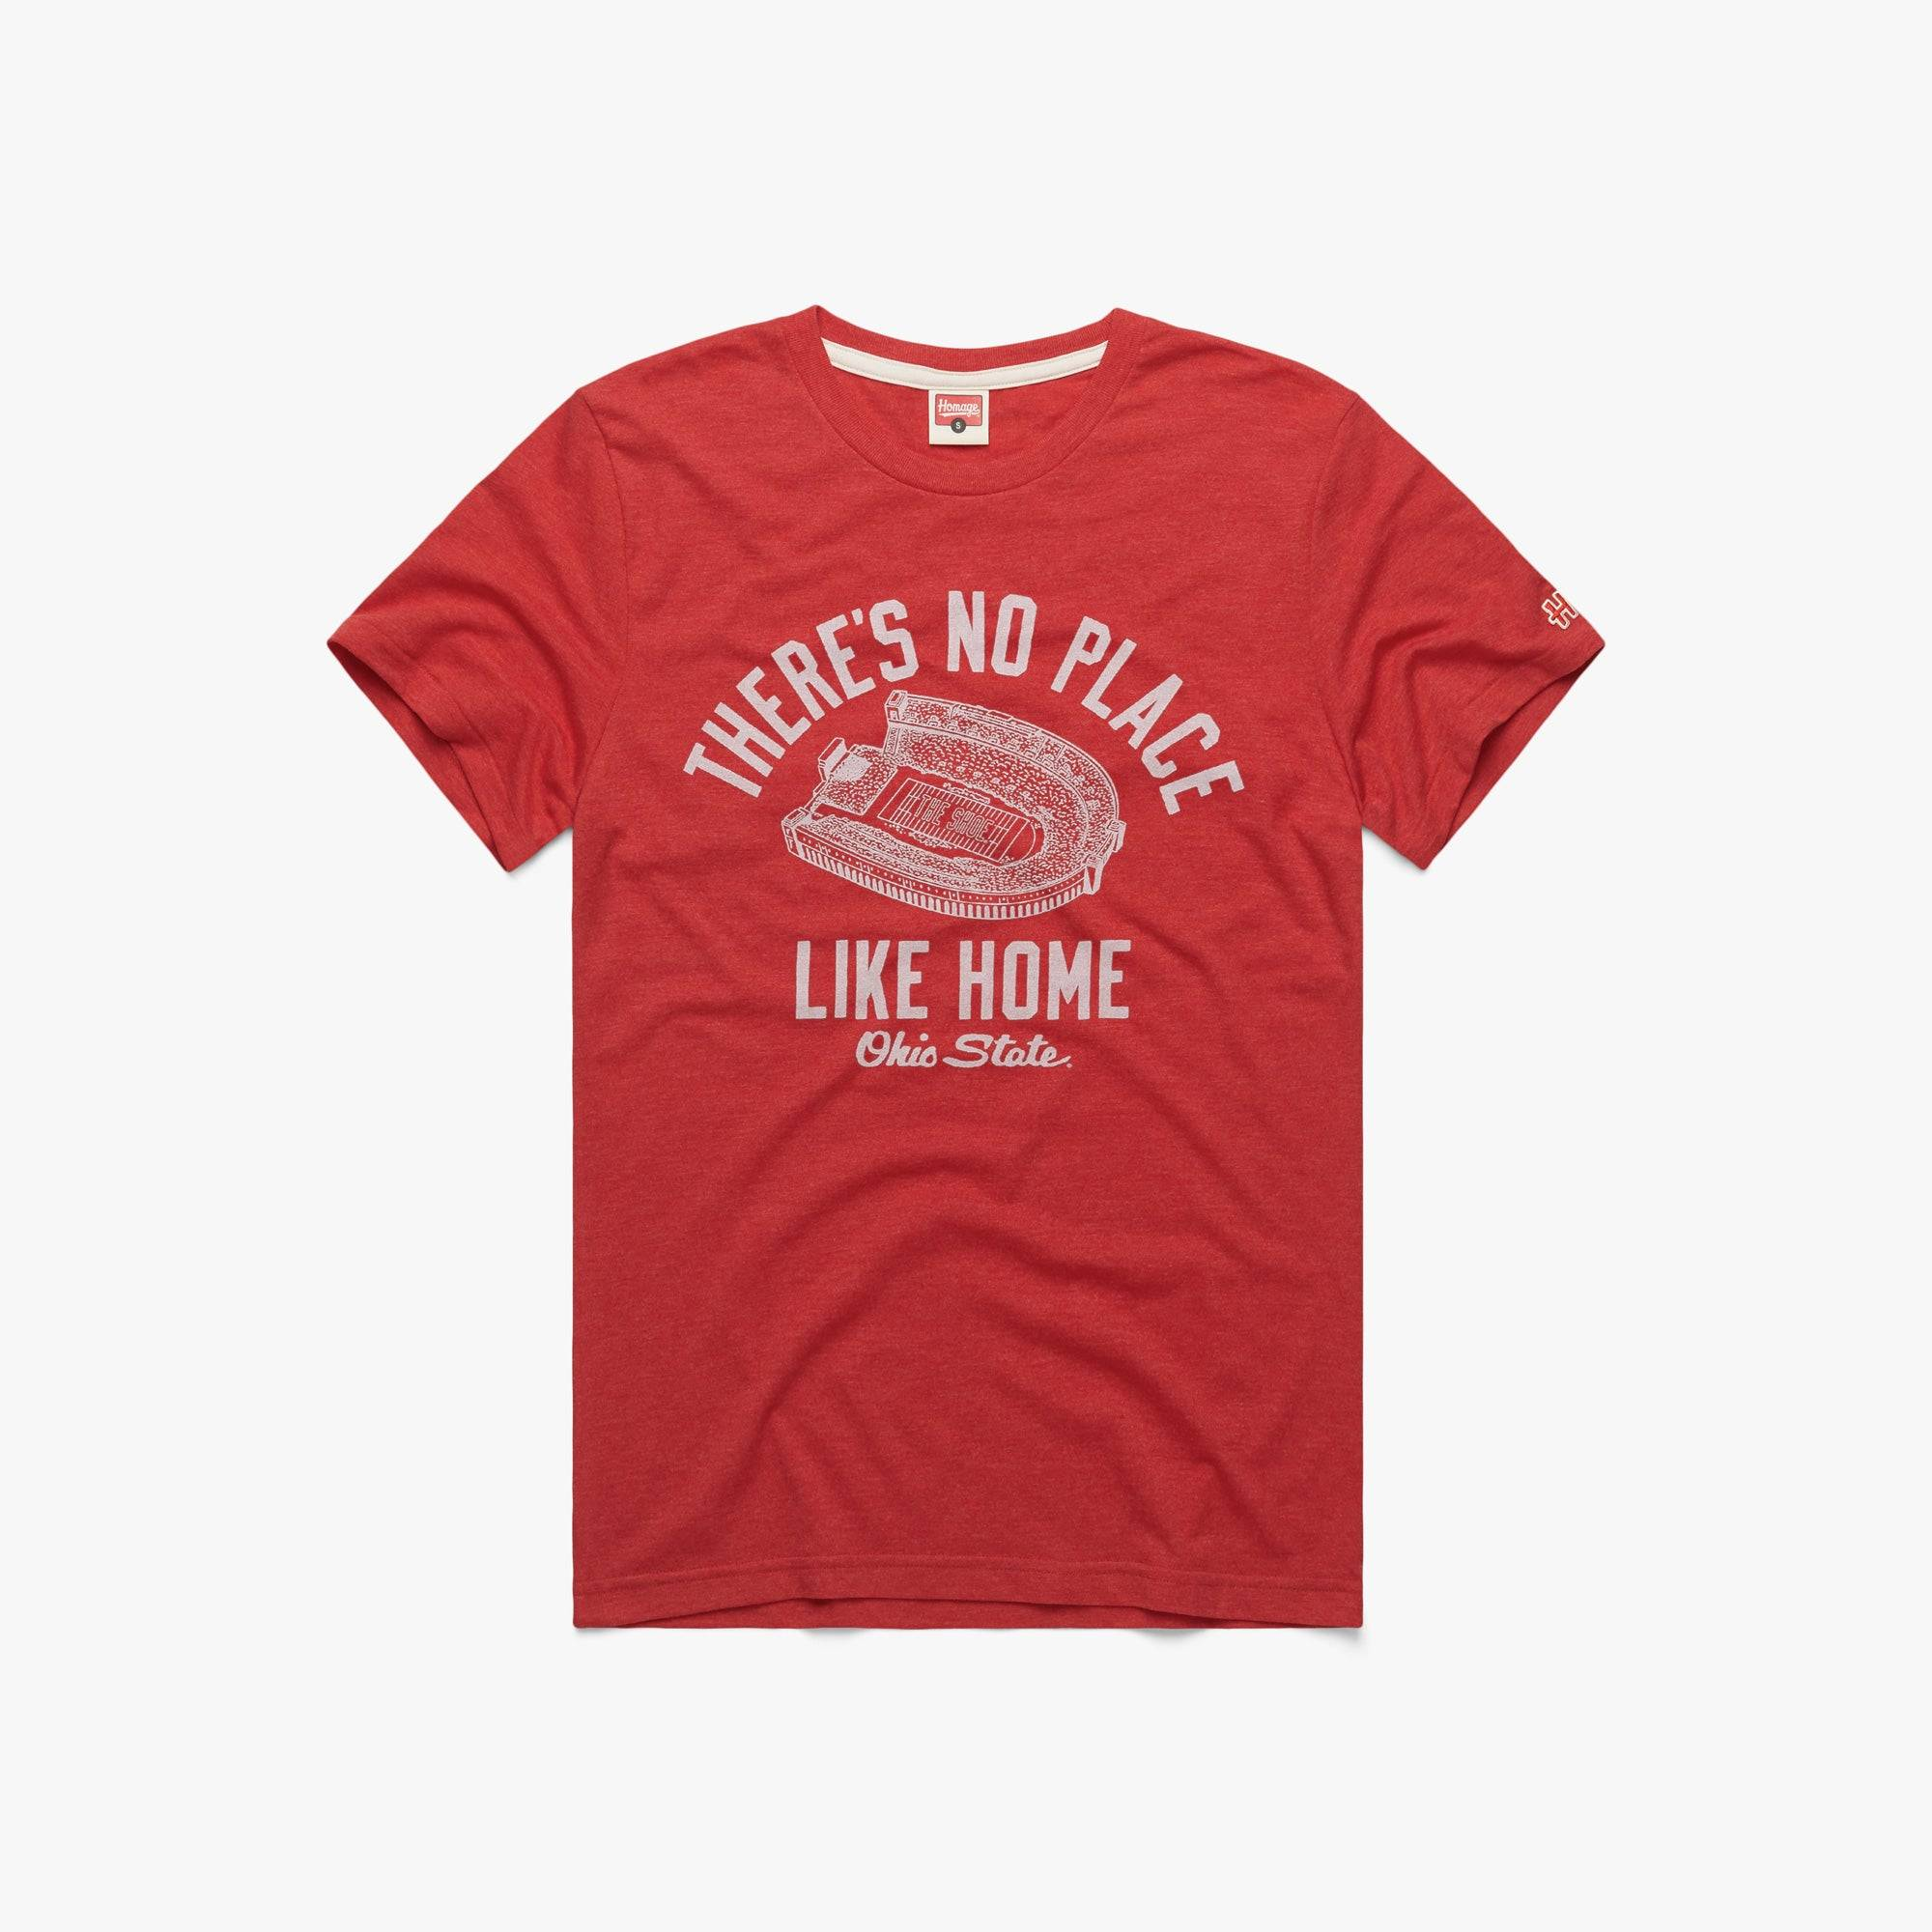 HOMAGE There's No Place Like Home Ohio State in  Red (Size: M)